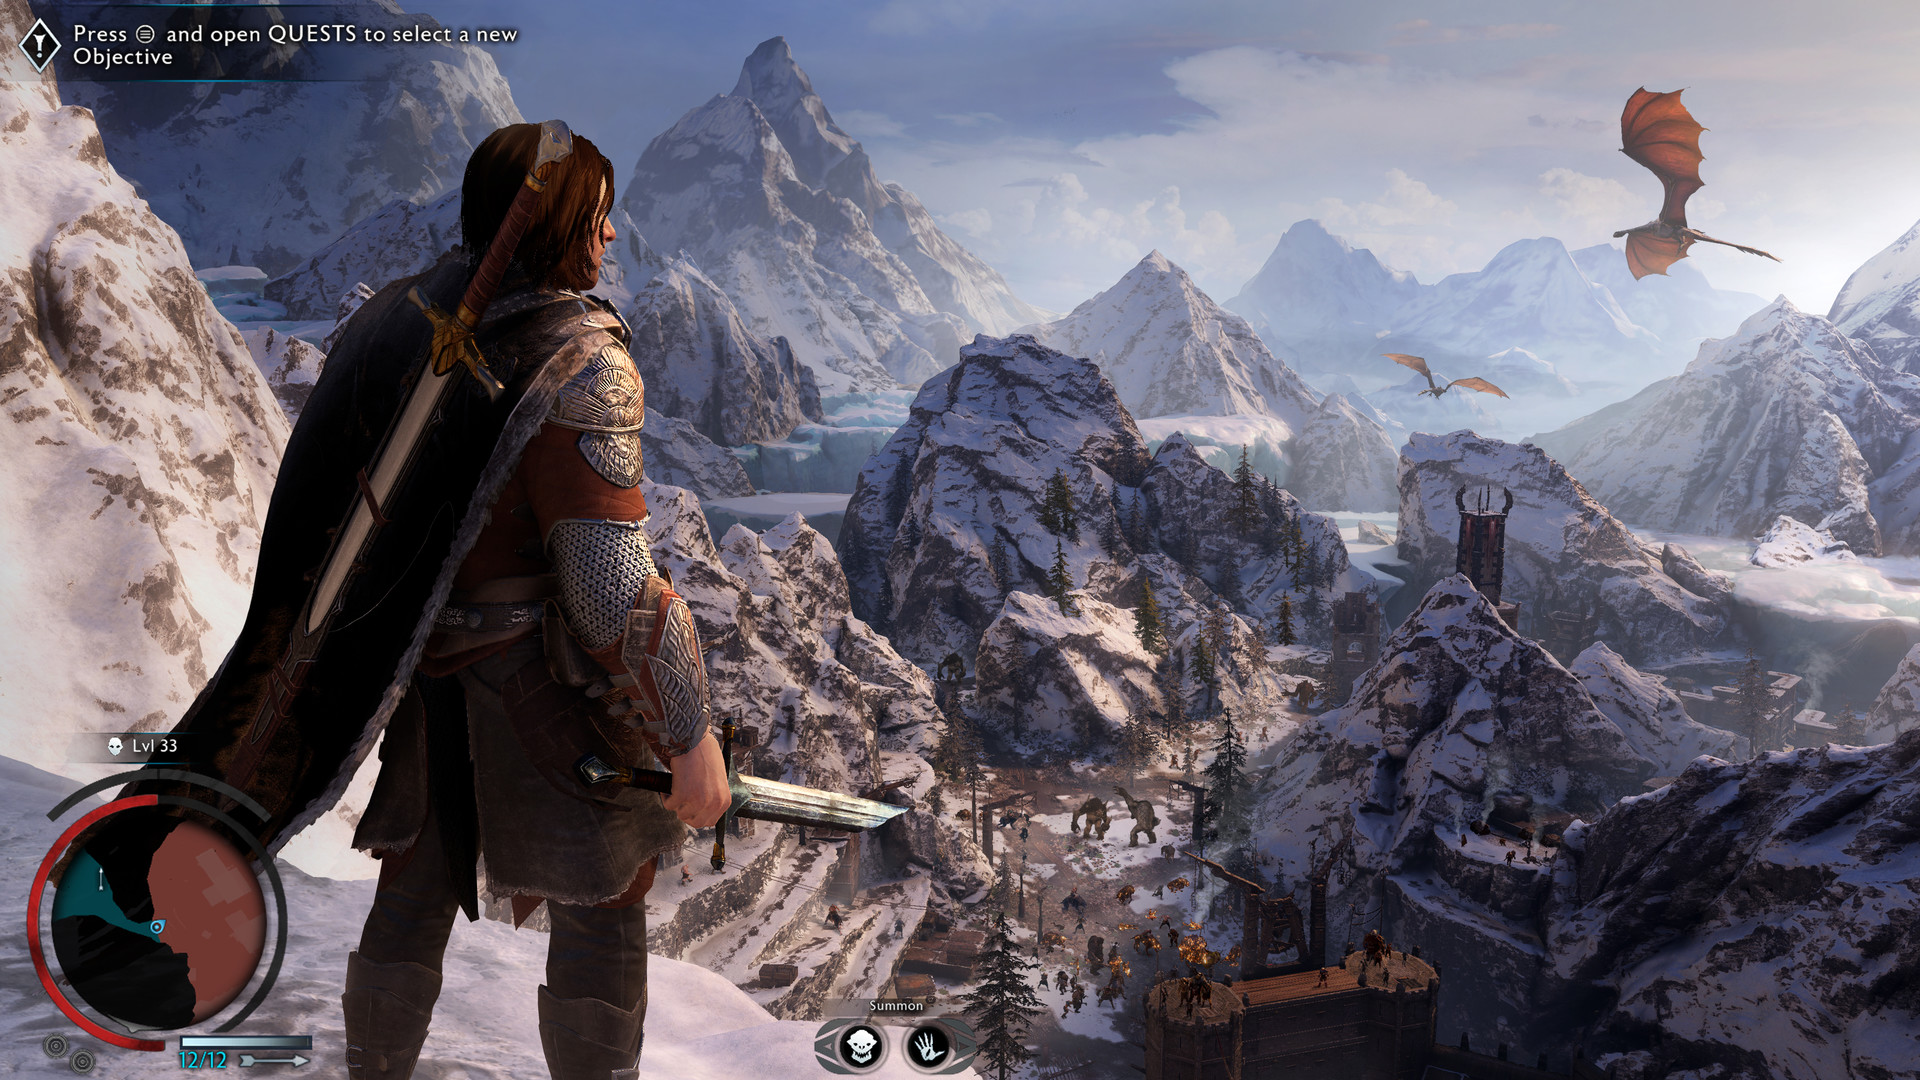 Middle-Earth: Shadow of War Review – The Perfect Sequel on moria middle earth map, shadow of mordor middle earth wallpaper, shadow of mordor middle earth character skins, hobbit middle earth map, tolkien middle earth map, shadow of mordor middle earth xbox 360, shadow of mordor middle earth gollum, shadow of mordor middle earth review,